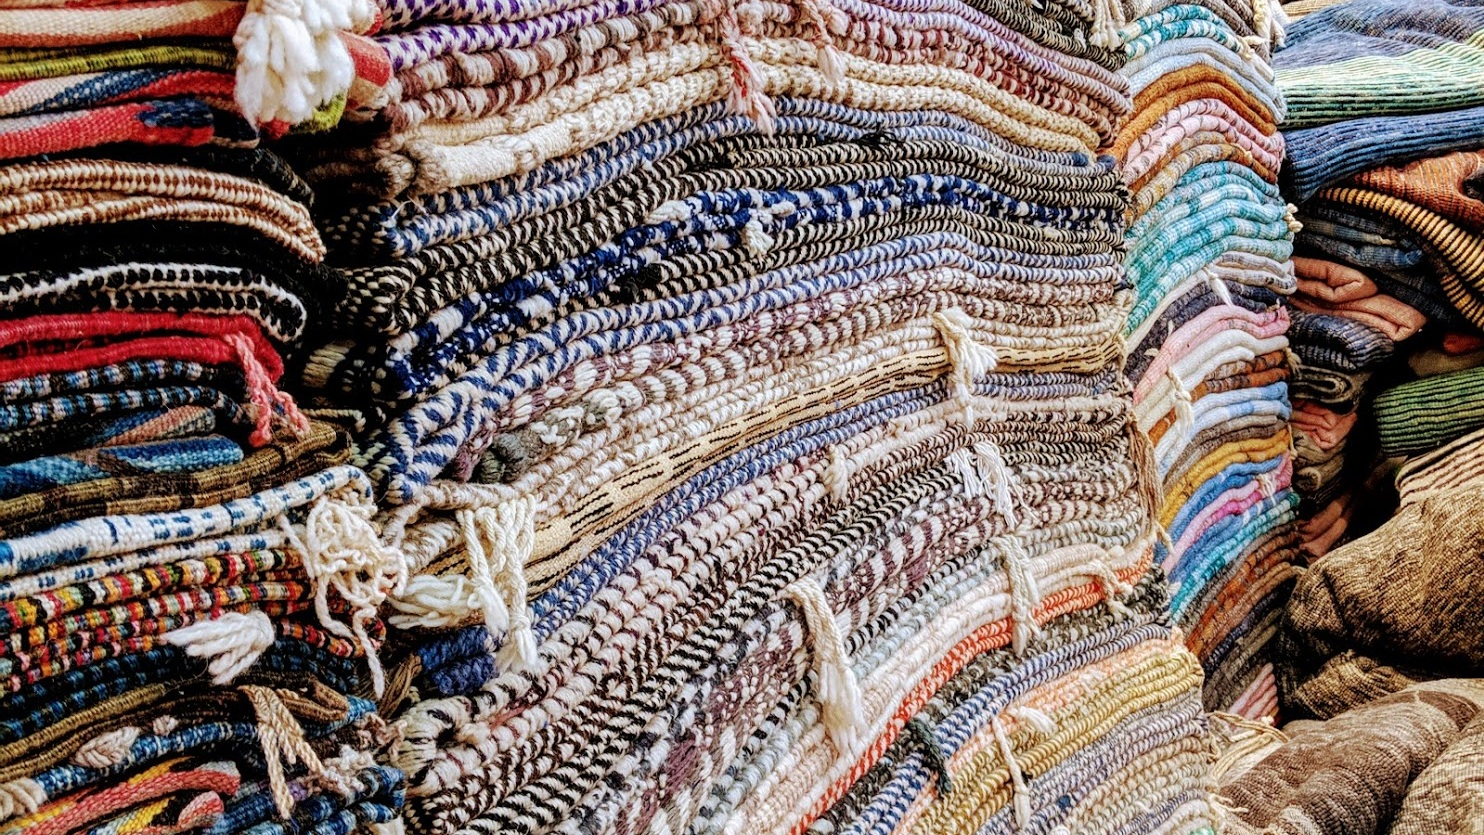 Photo taken by Casey on a visit to Morocco - what heaven for a rug-obsessed interior designer!